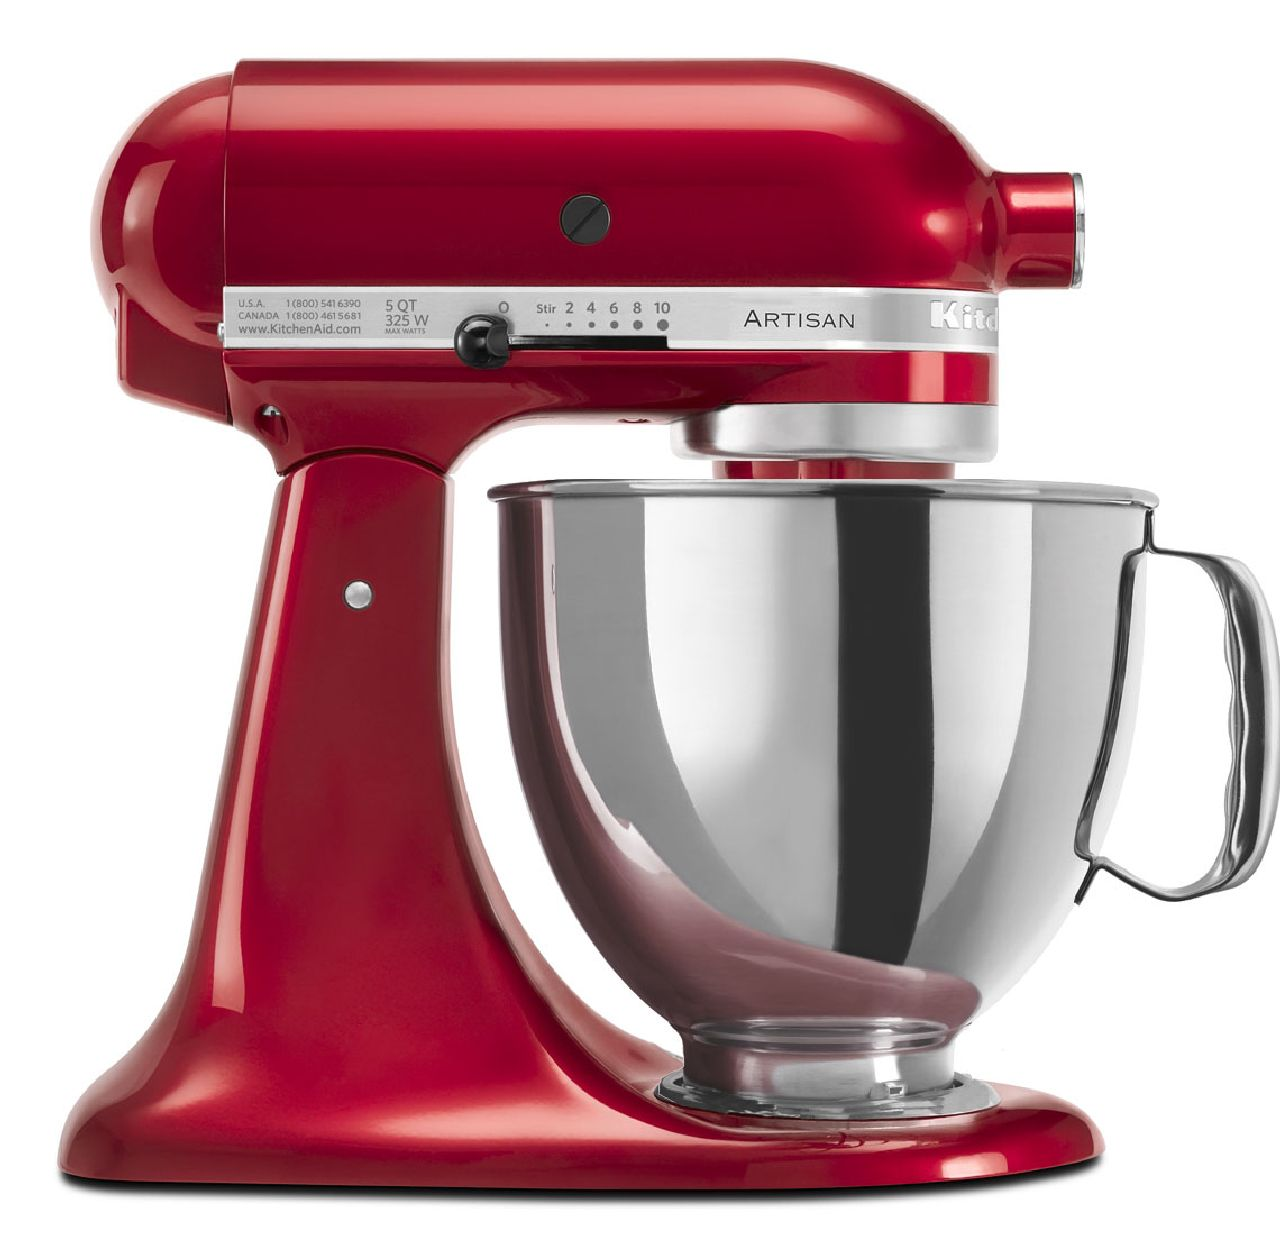 KitchenAid-Refurbished-Artisan-Series-5-Quart-Tilt-Head-Stand-Mixer-RRK150 thumbnail 29